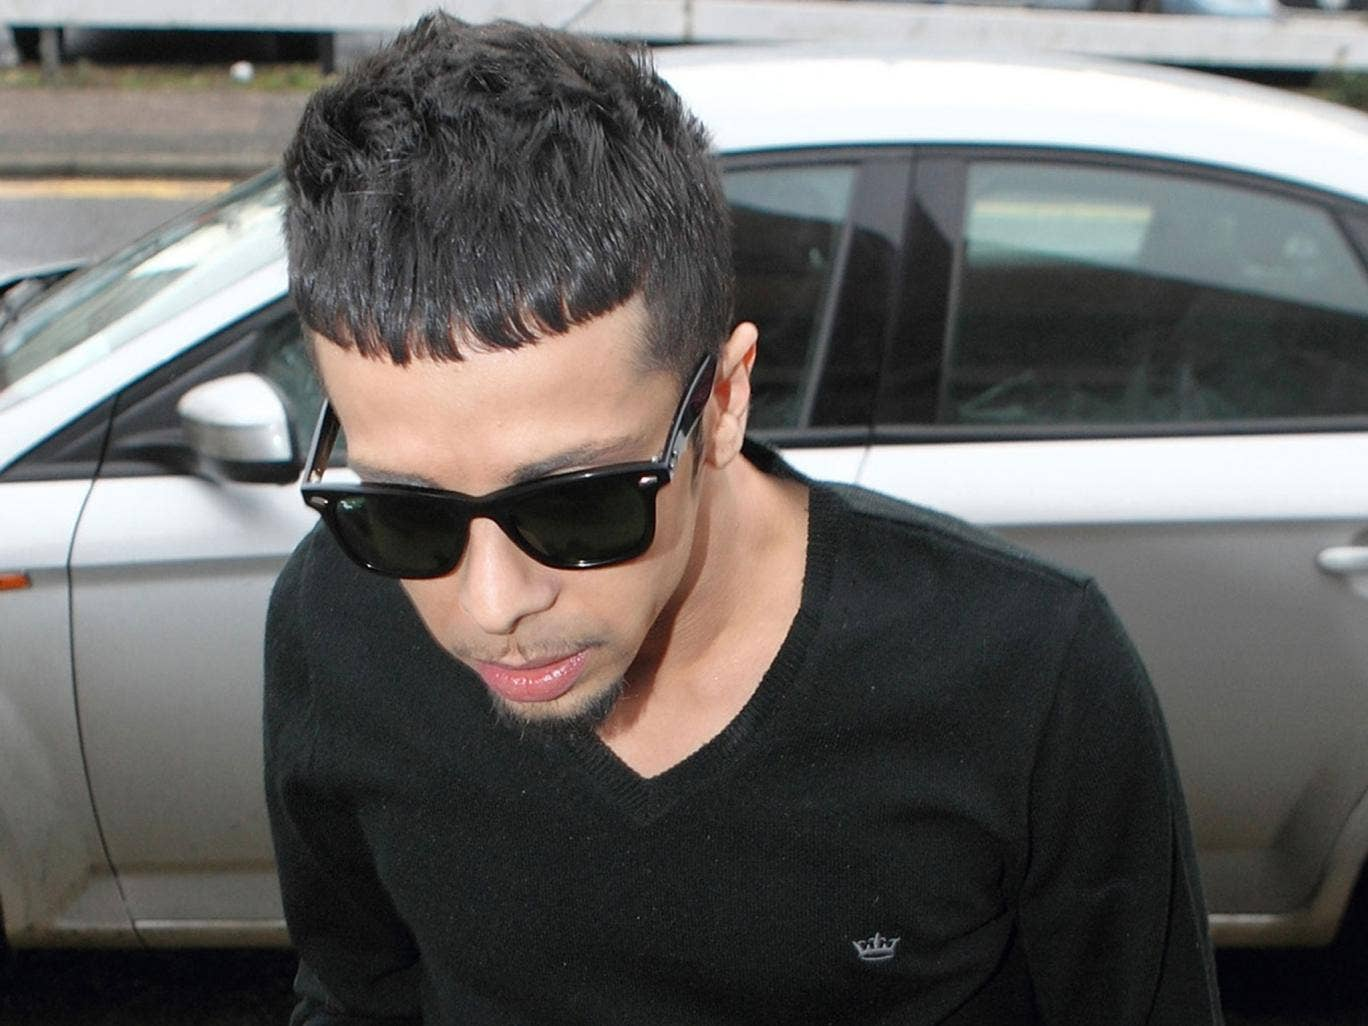 N-Dubz rapper Dappy has been found guilty of affray in connection with a brawl at a petrol station